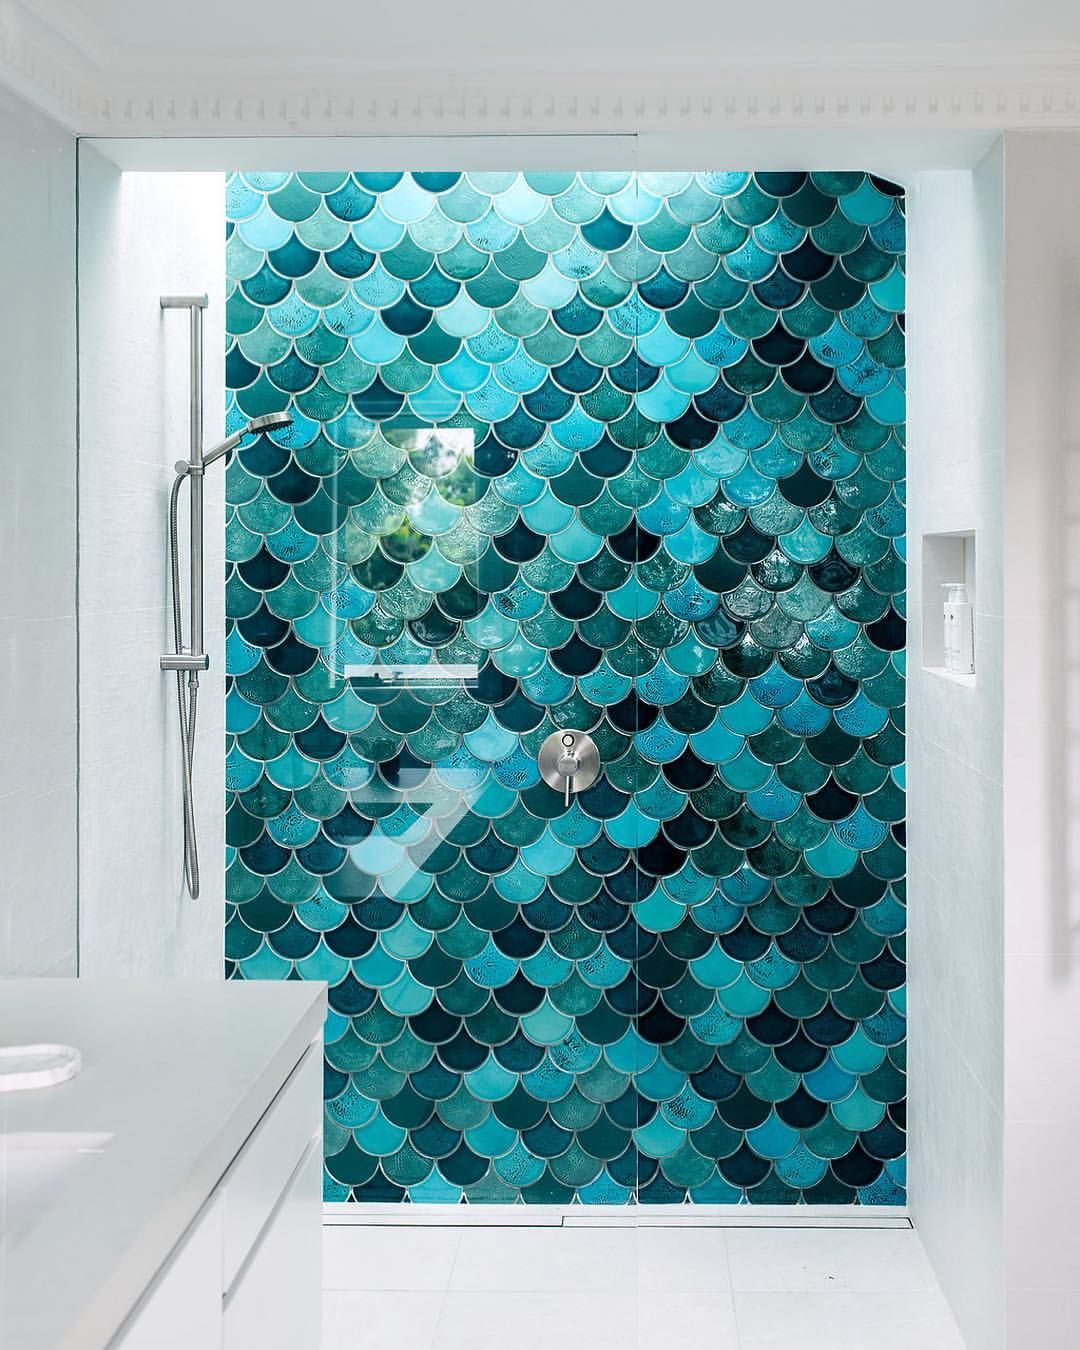 Which Way Would You Lay Mermaid Aka Fish Scale Tiles Curve Up Or Down We Ve Done It Both Ways But In H Mermaid Tile Kid Bathroom Decor Teal Bathroom